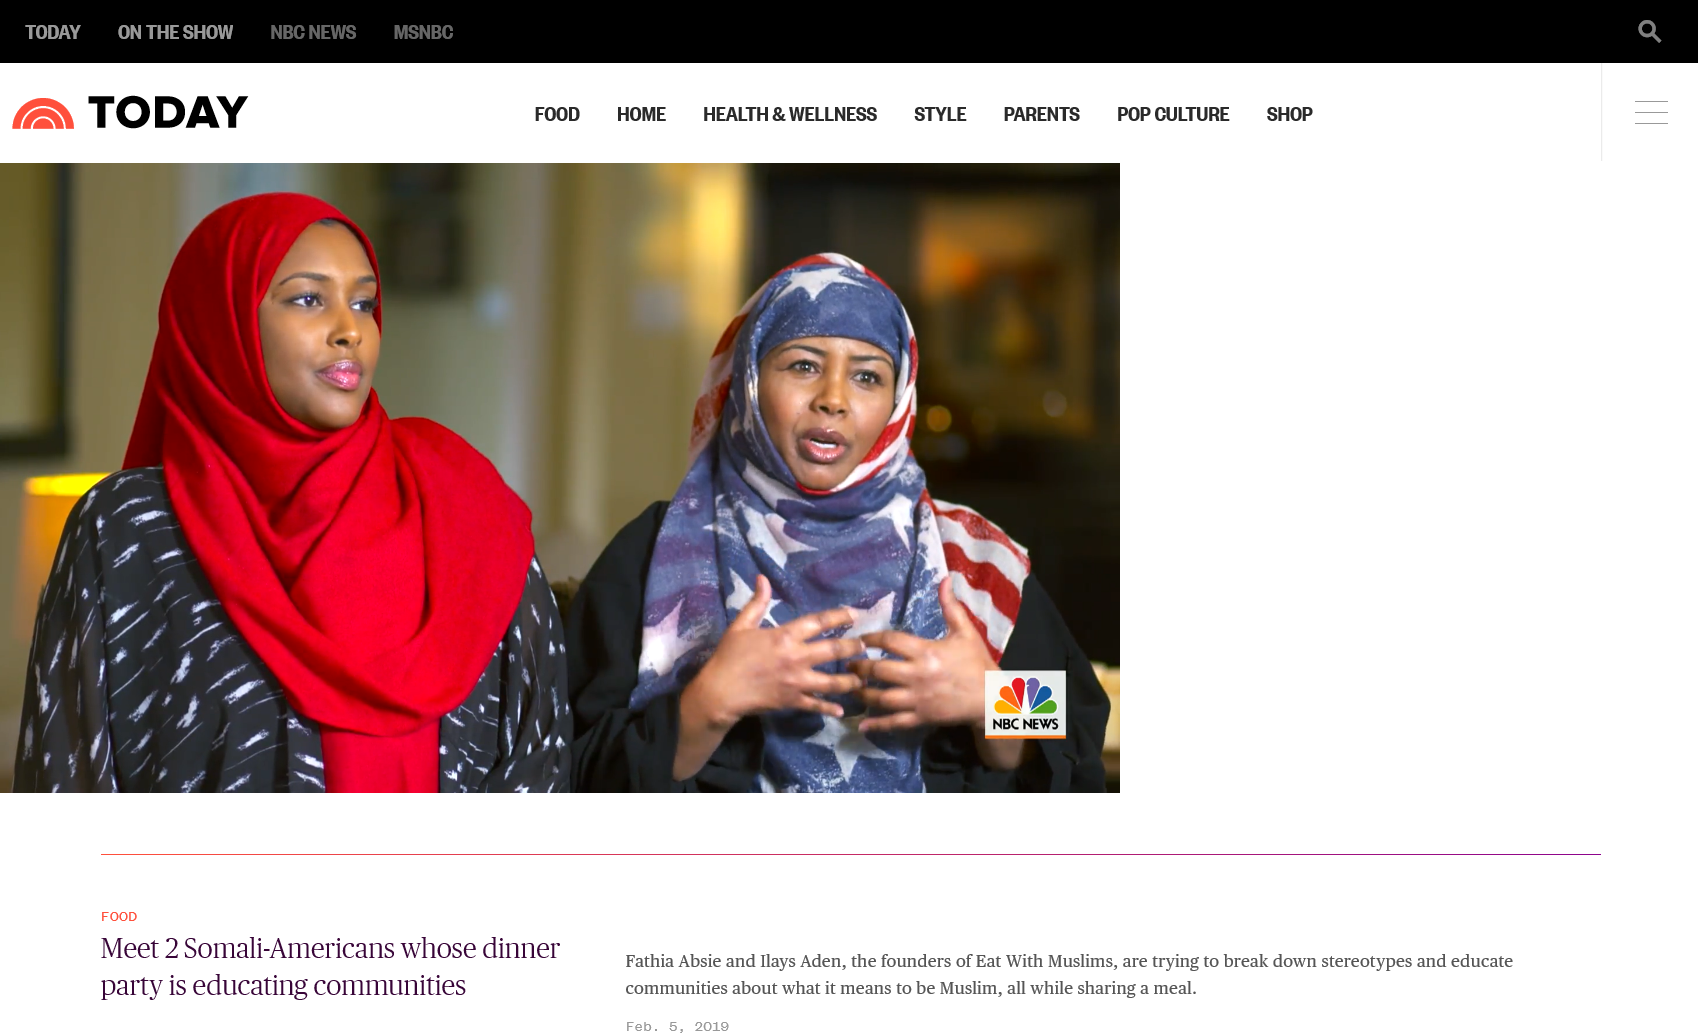 Meet 2 Somali-Americans whose dinner party is educating communities - 2/5/2019: Fathia Absie and Ilays Aden, the founders of Eat With Muslims, are trying to break down stereotypes and educate communities about what it means to be Muslim, all while sharing a meal.